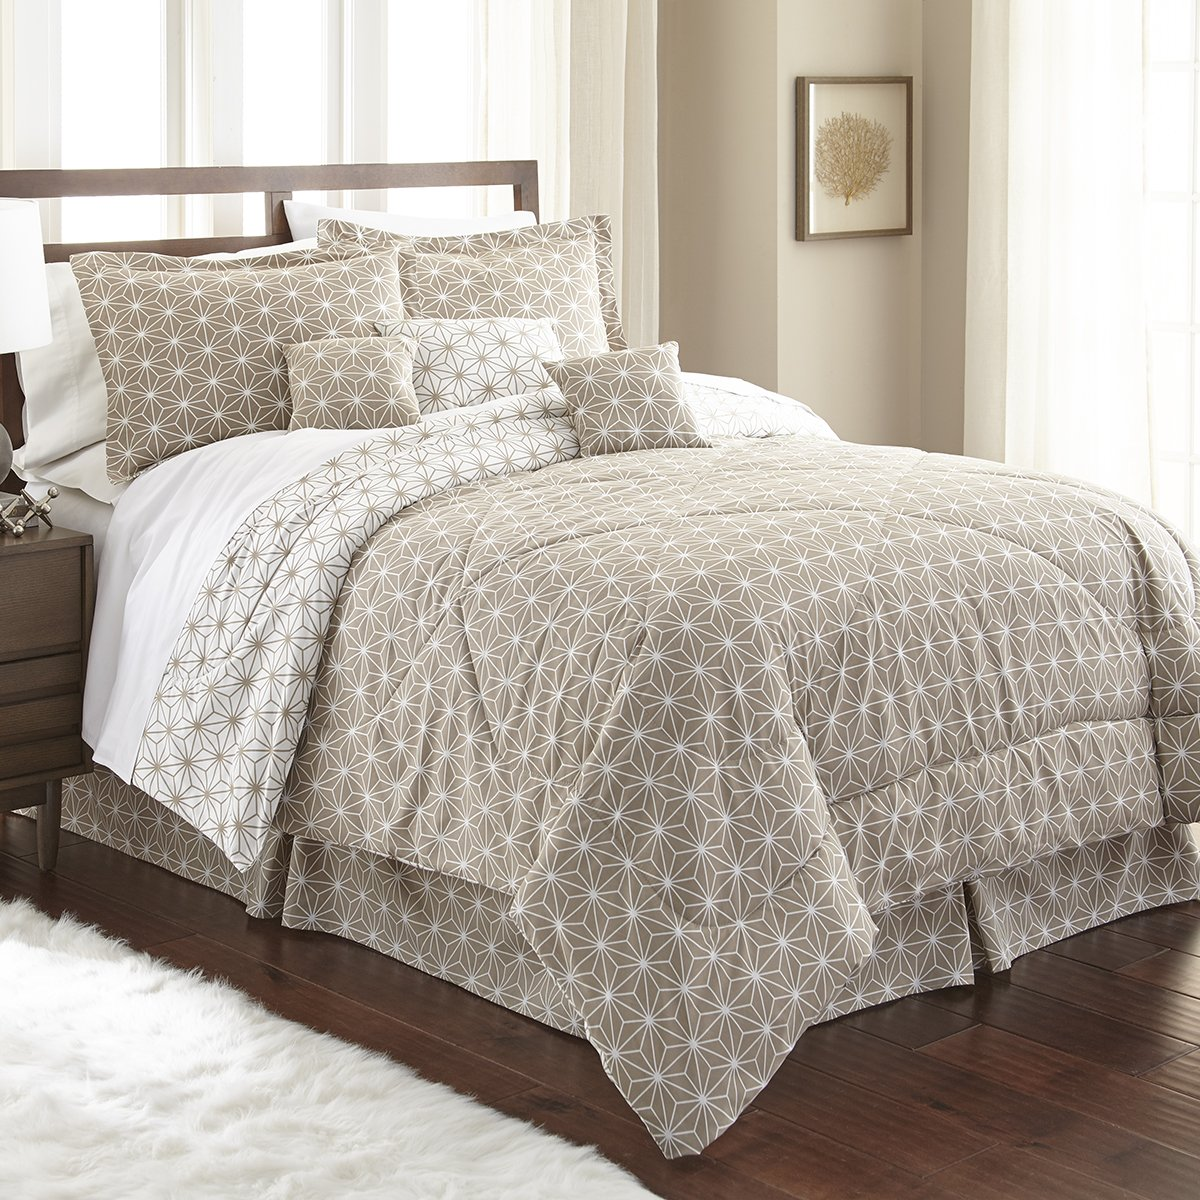 Spirit Linen, Inc Hotel 5th Ave Queen Taupe/White Hotel 5th Ave Galaxy Collection 7 PC Comforter Set